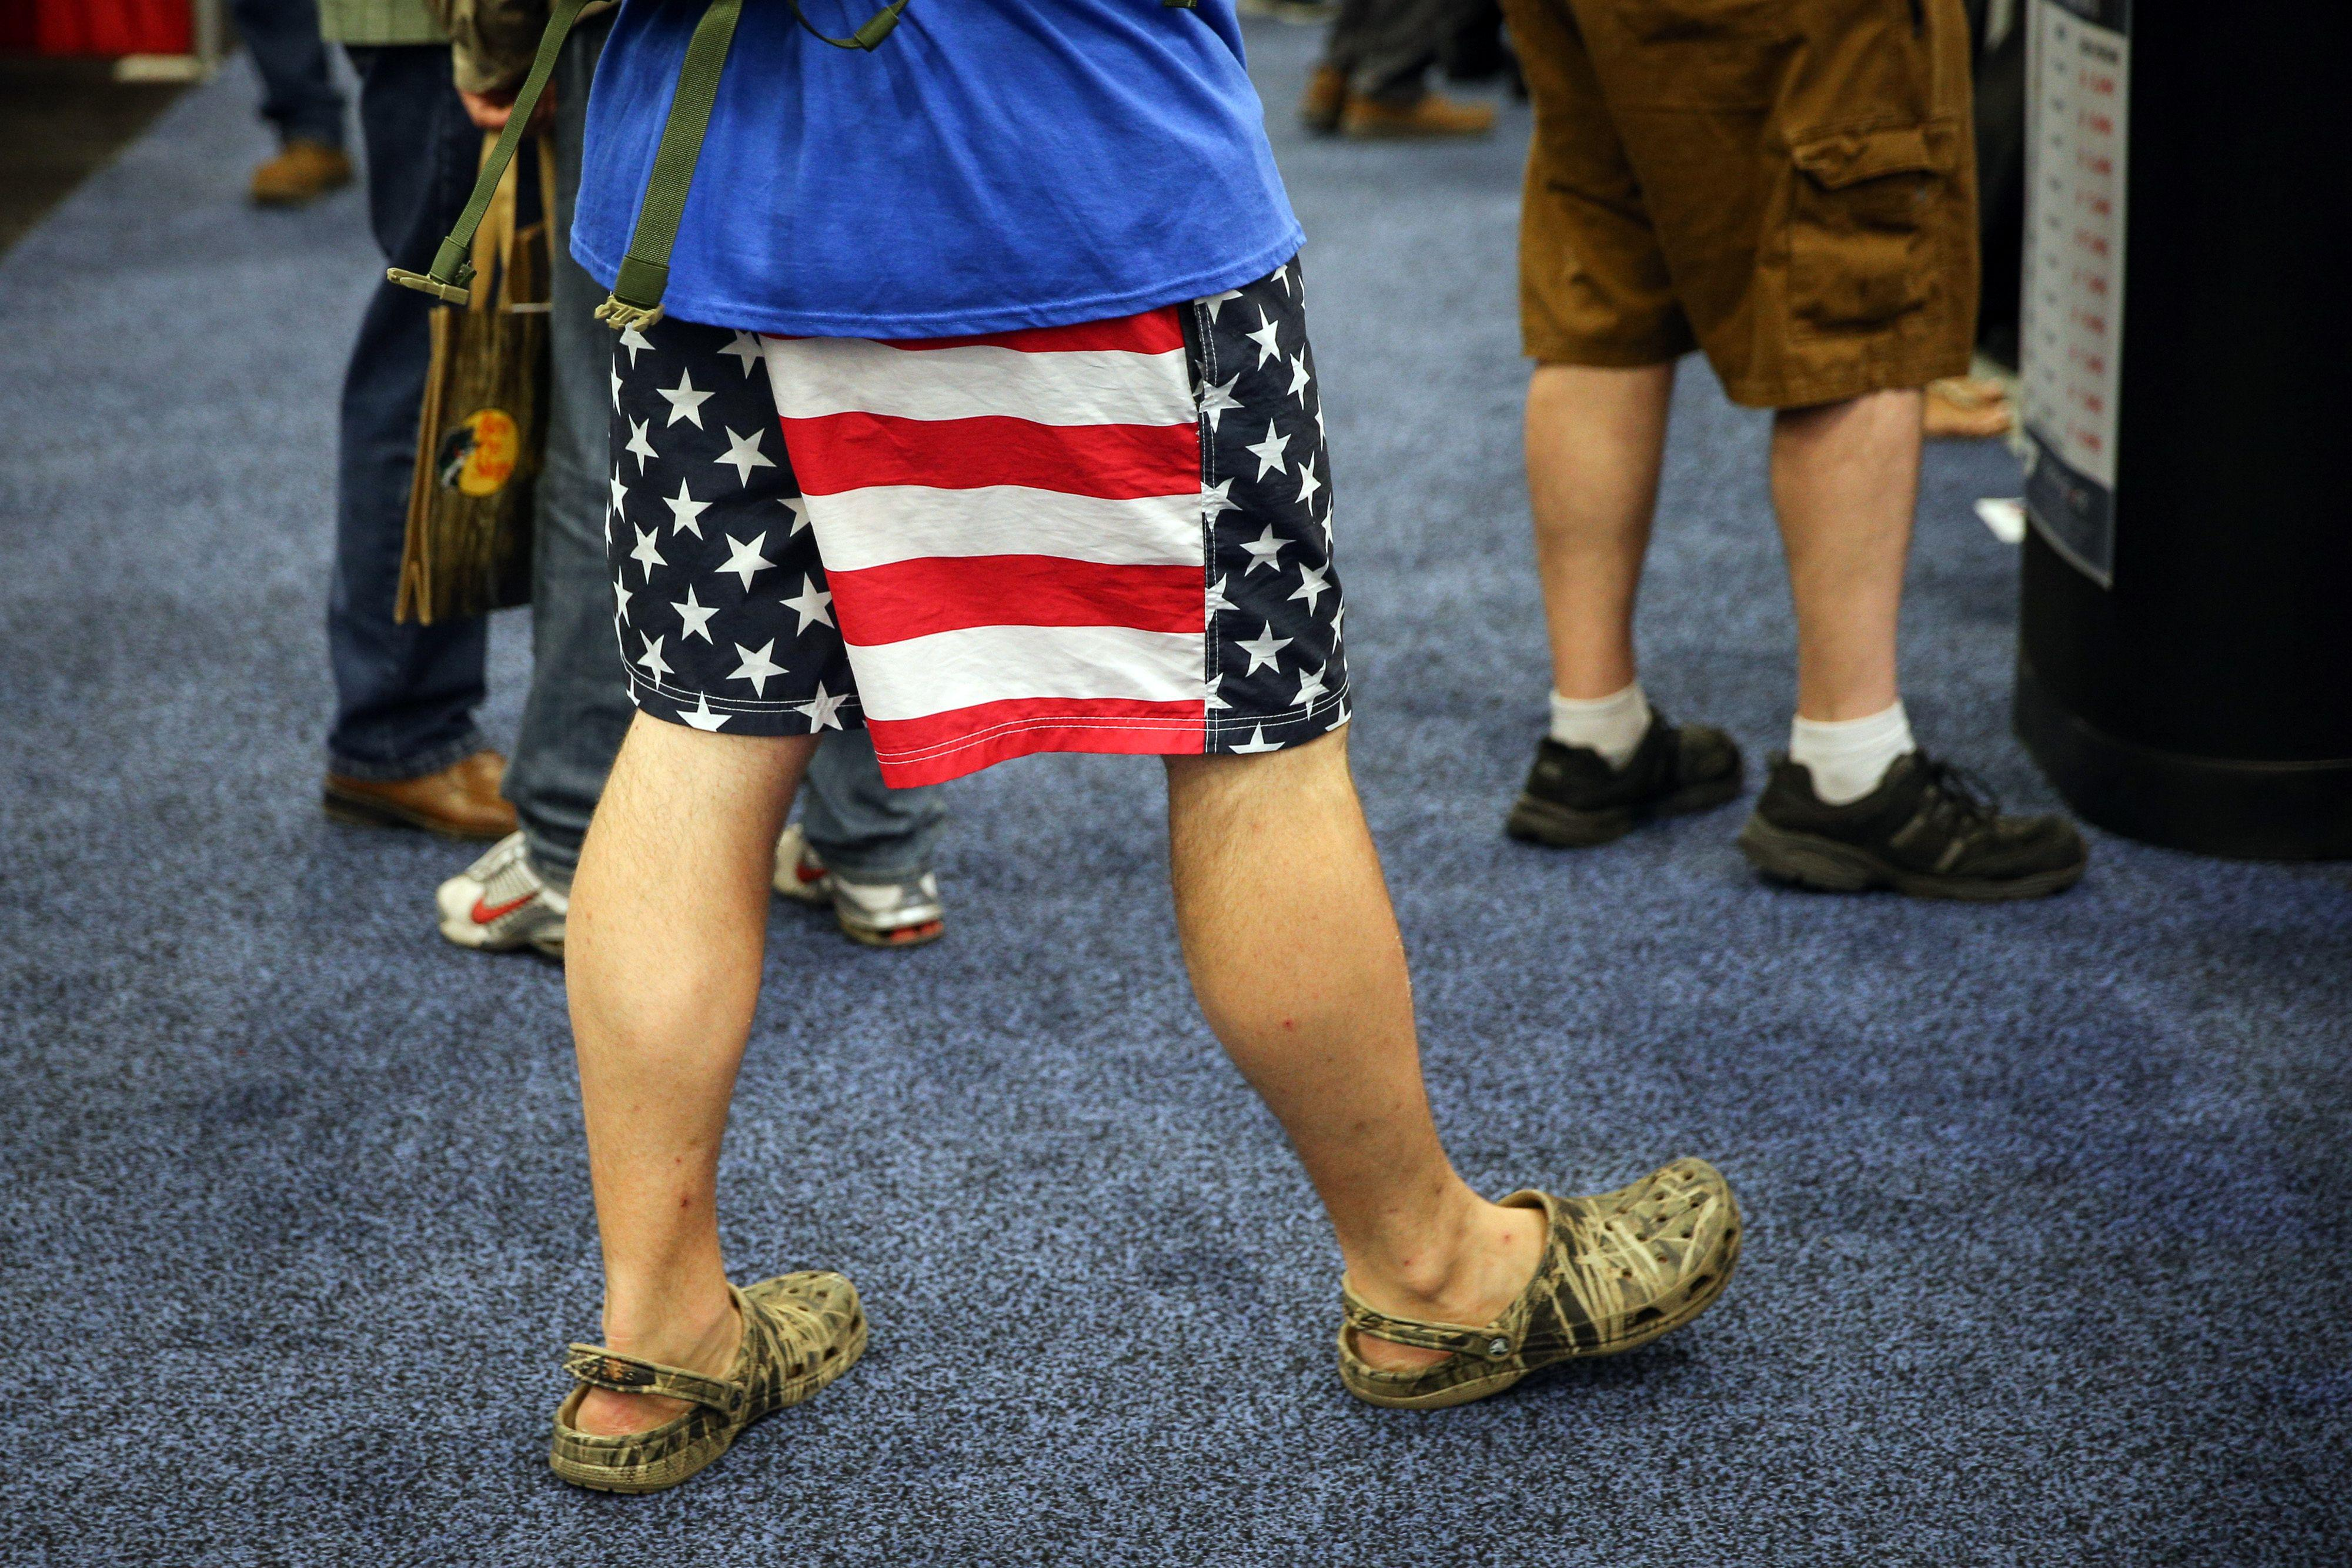 A man wears American flag shorts and camouflage Crocs.